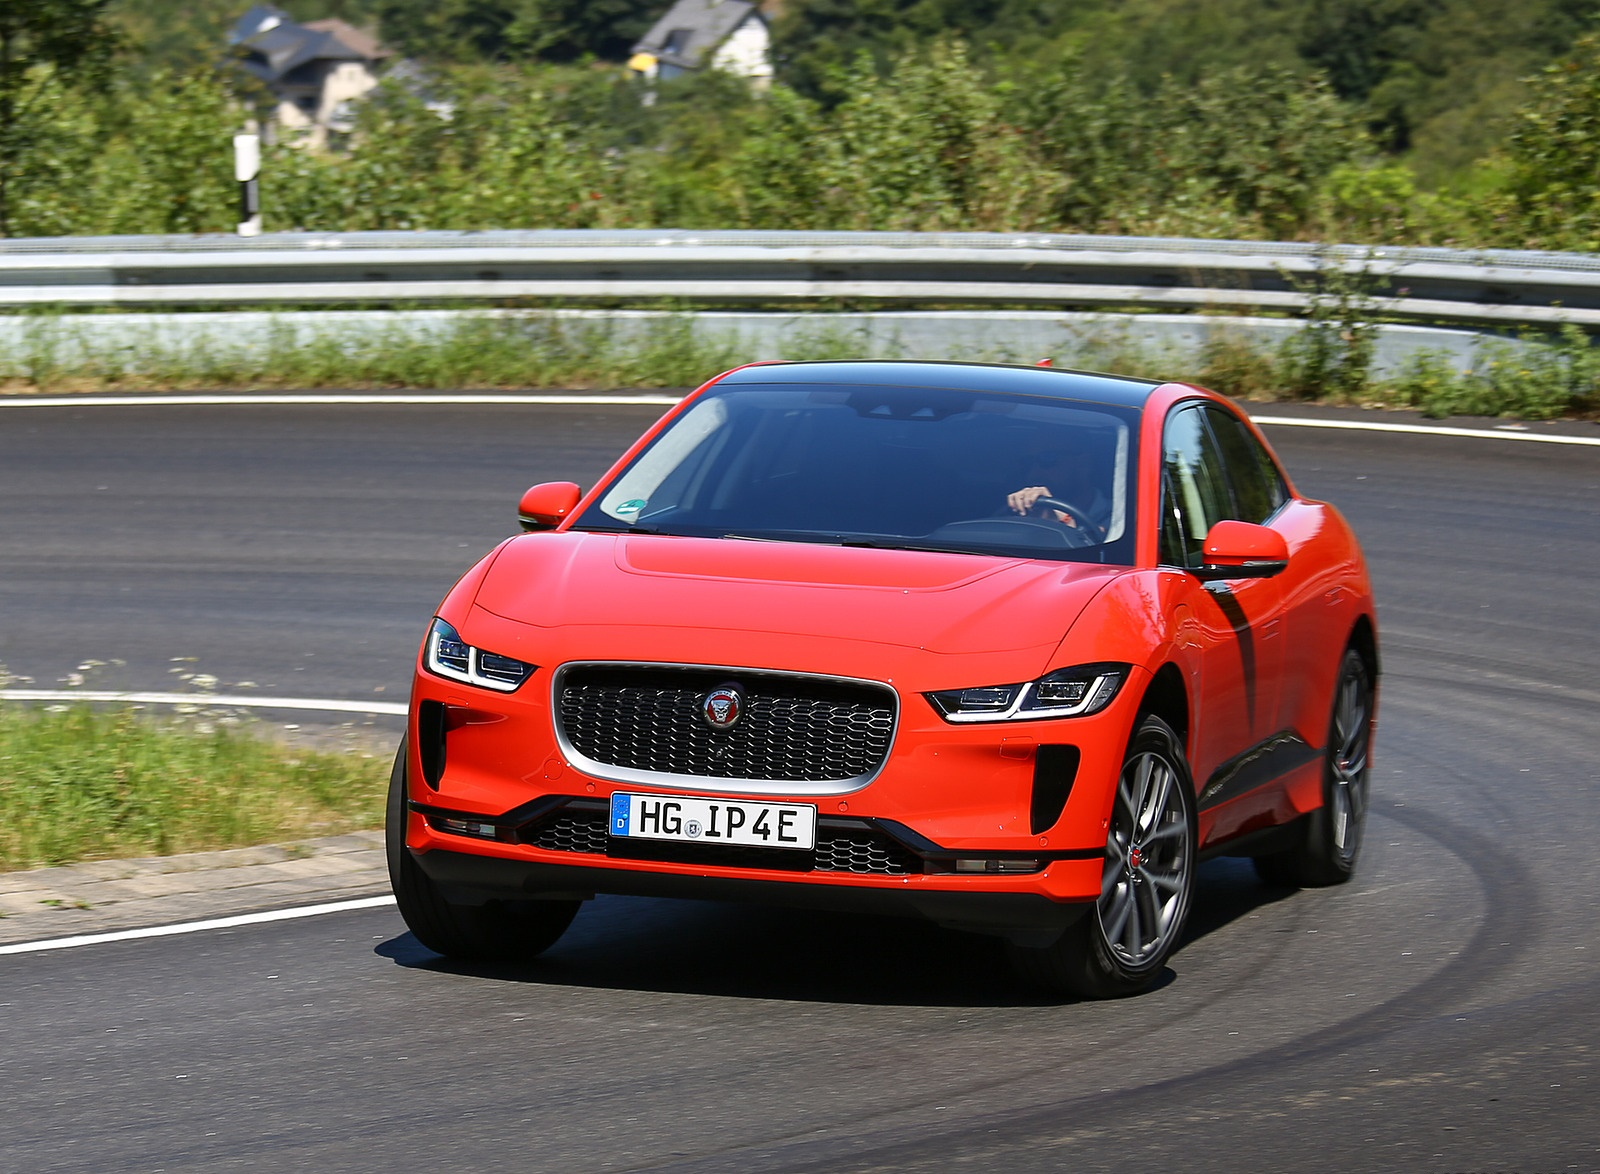 2019 Jaguar I-PACE EV400 AWD HSE First Edition (Color: Photon Red) Front Three-Quarter Wallpapers #35 of 192